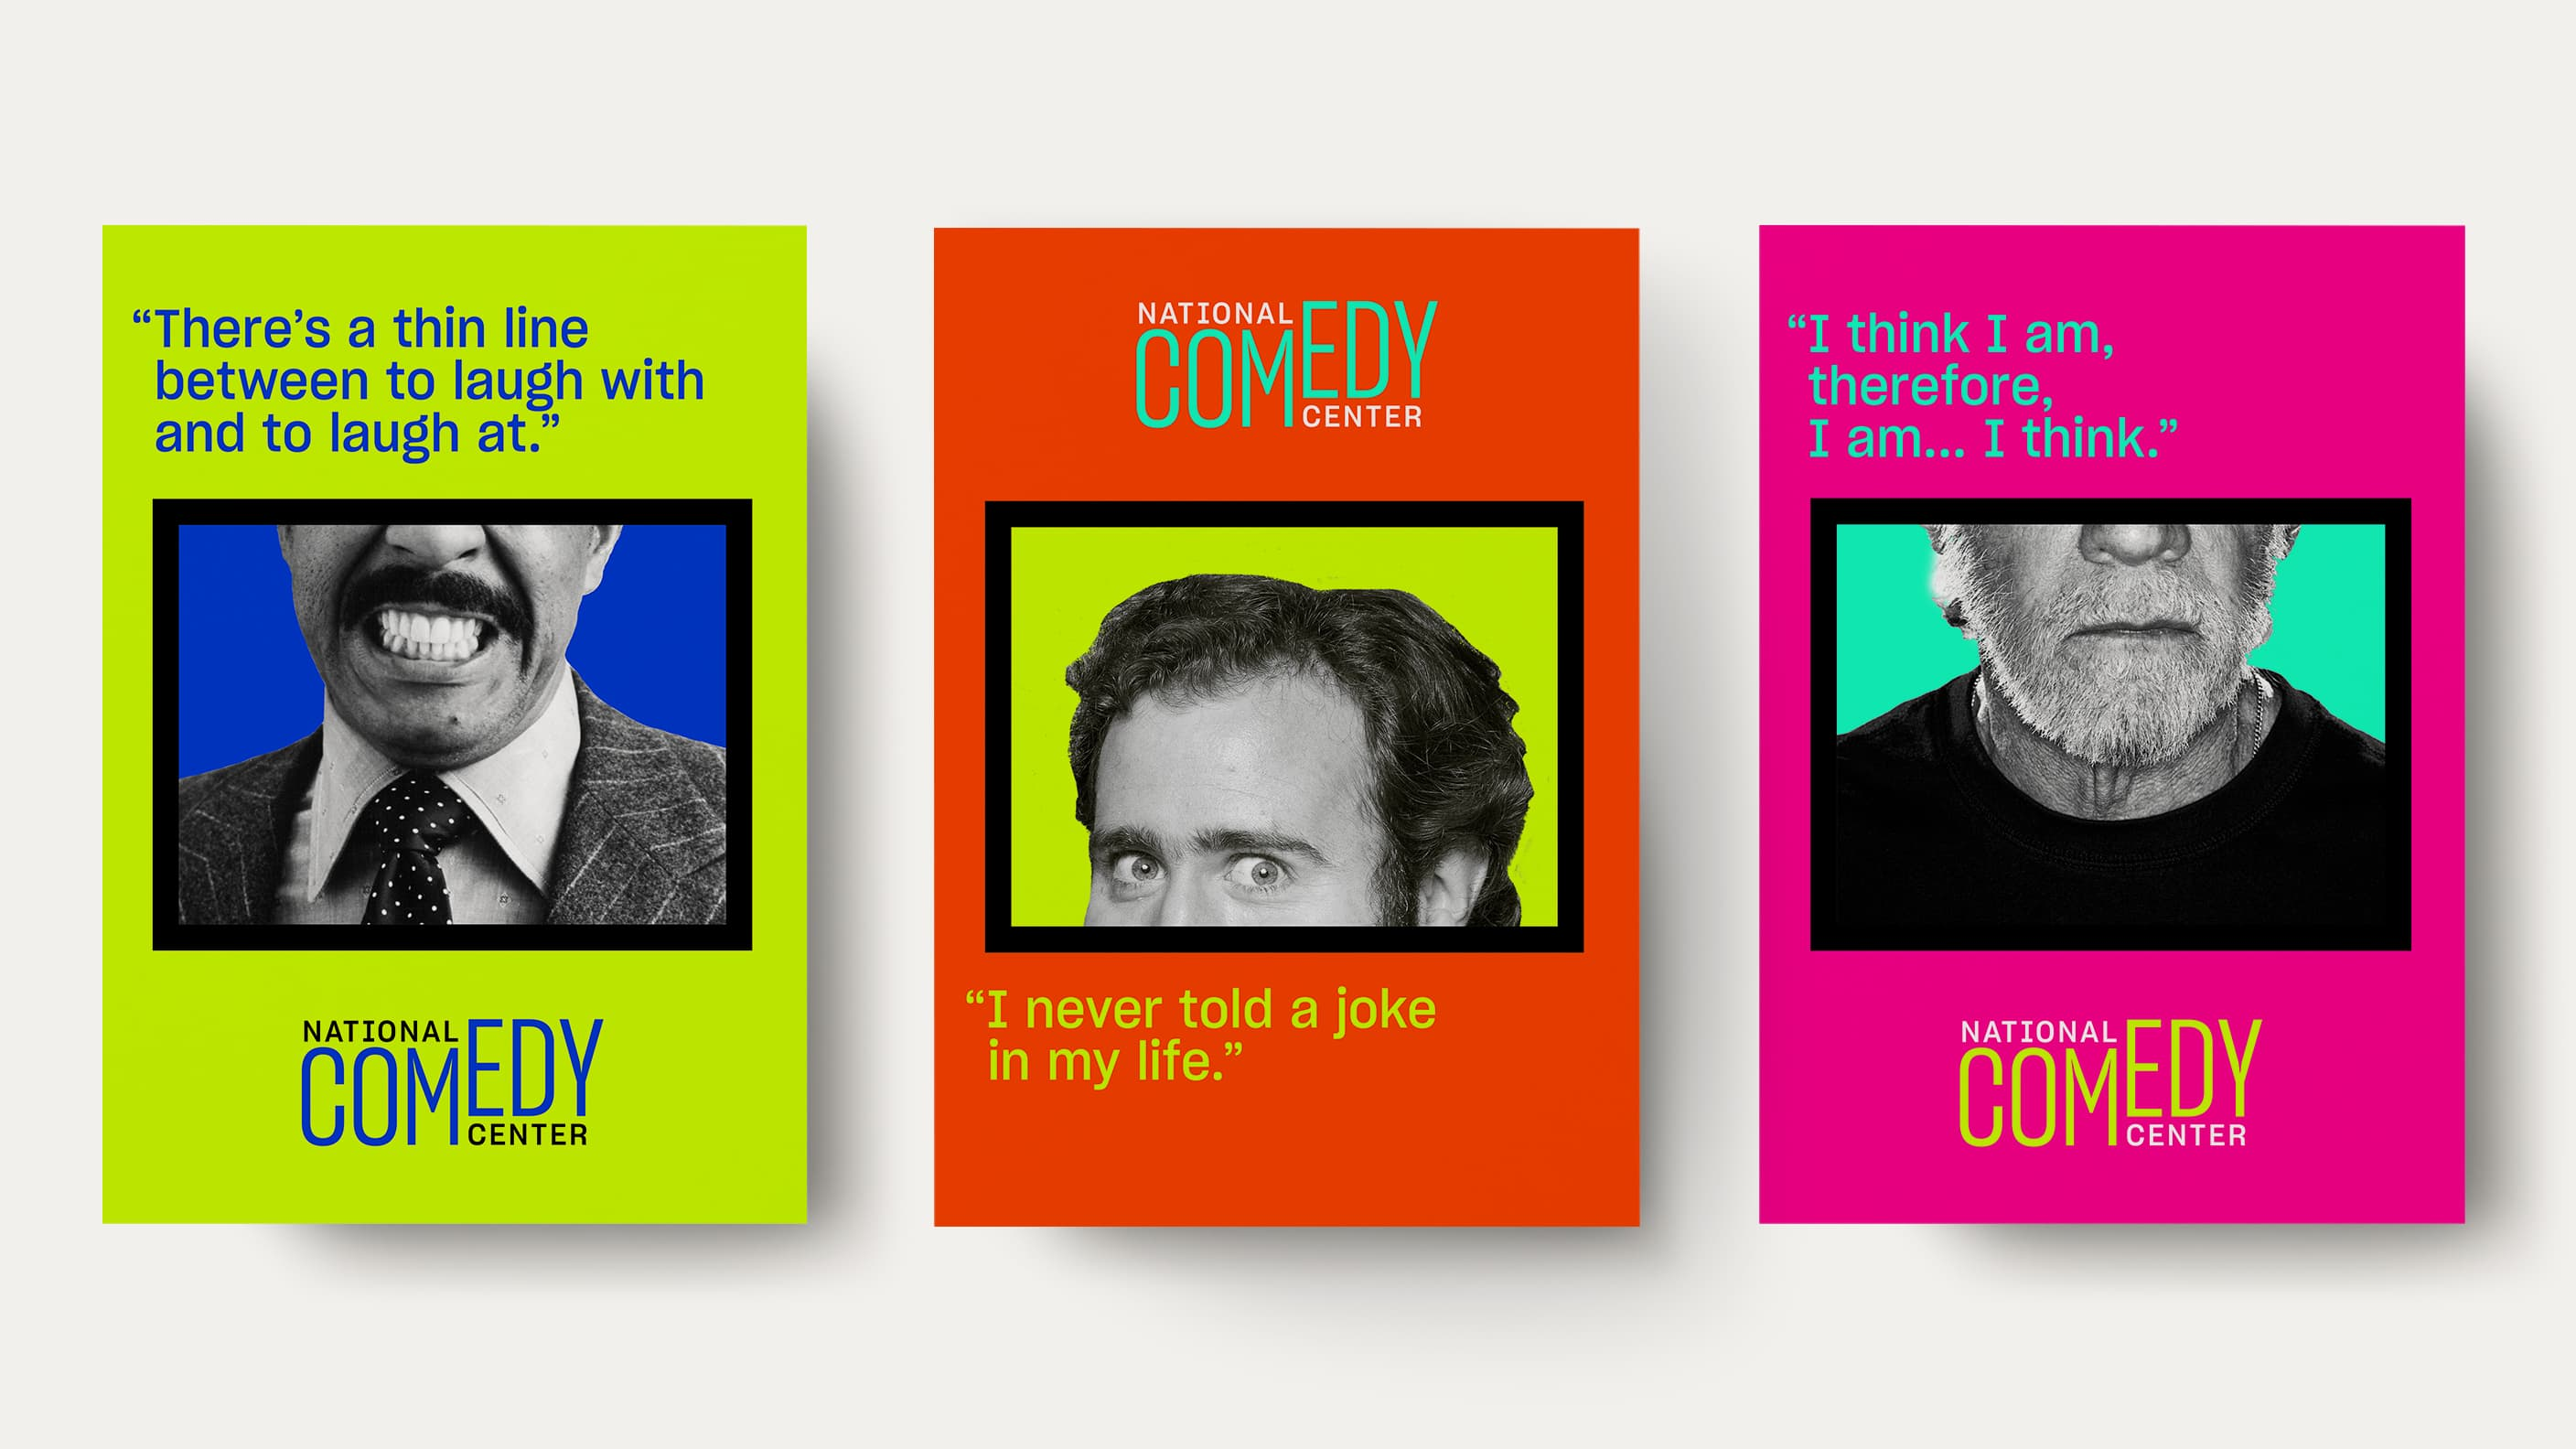 National Comedy Center posters